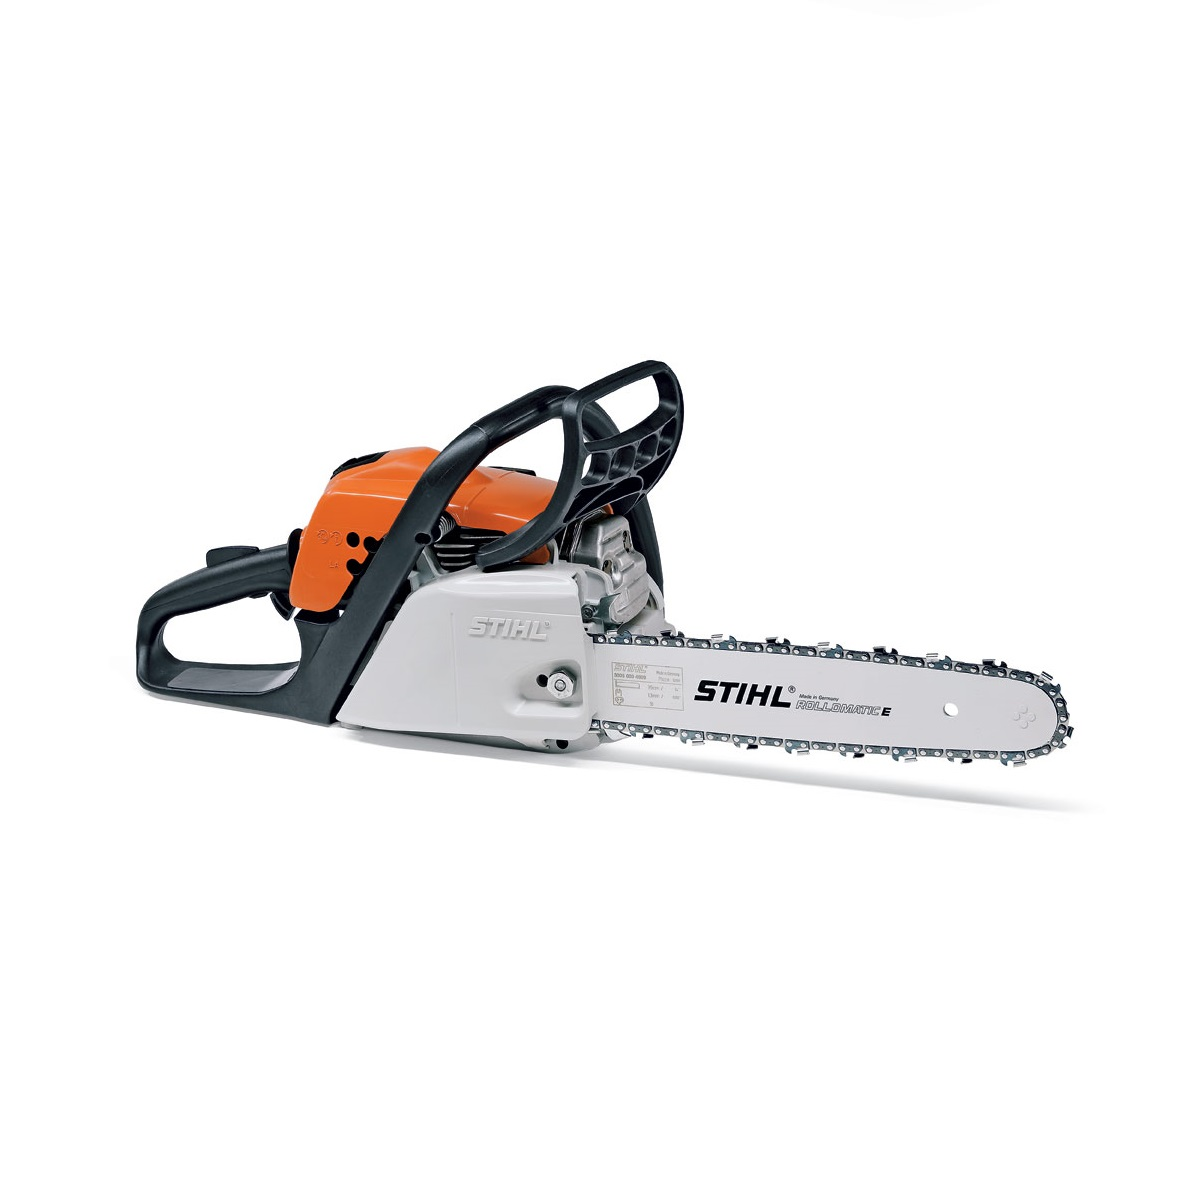 Stihl Chain Saw Parts Manual Free Wiring Diagram For You